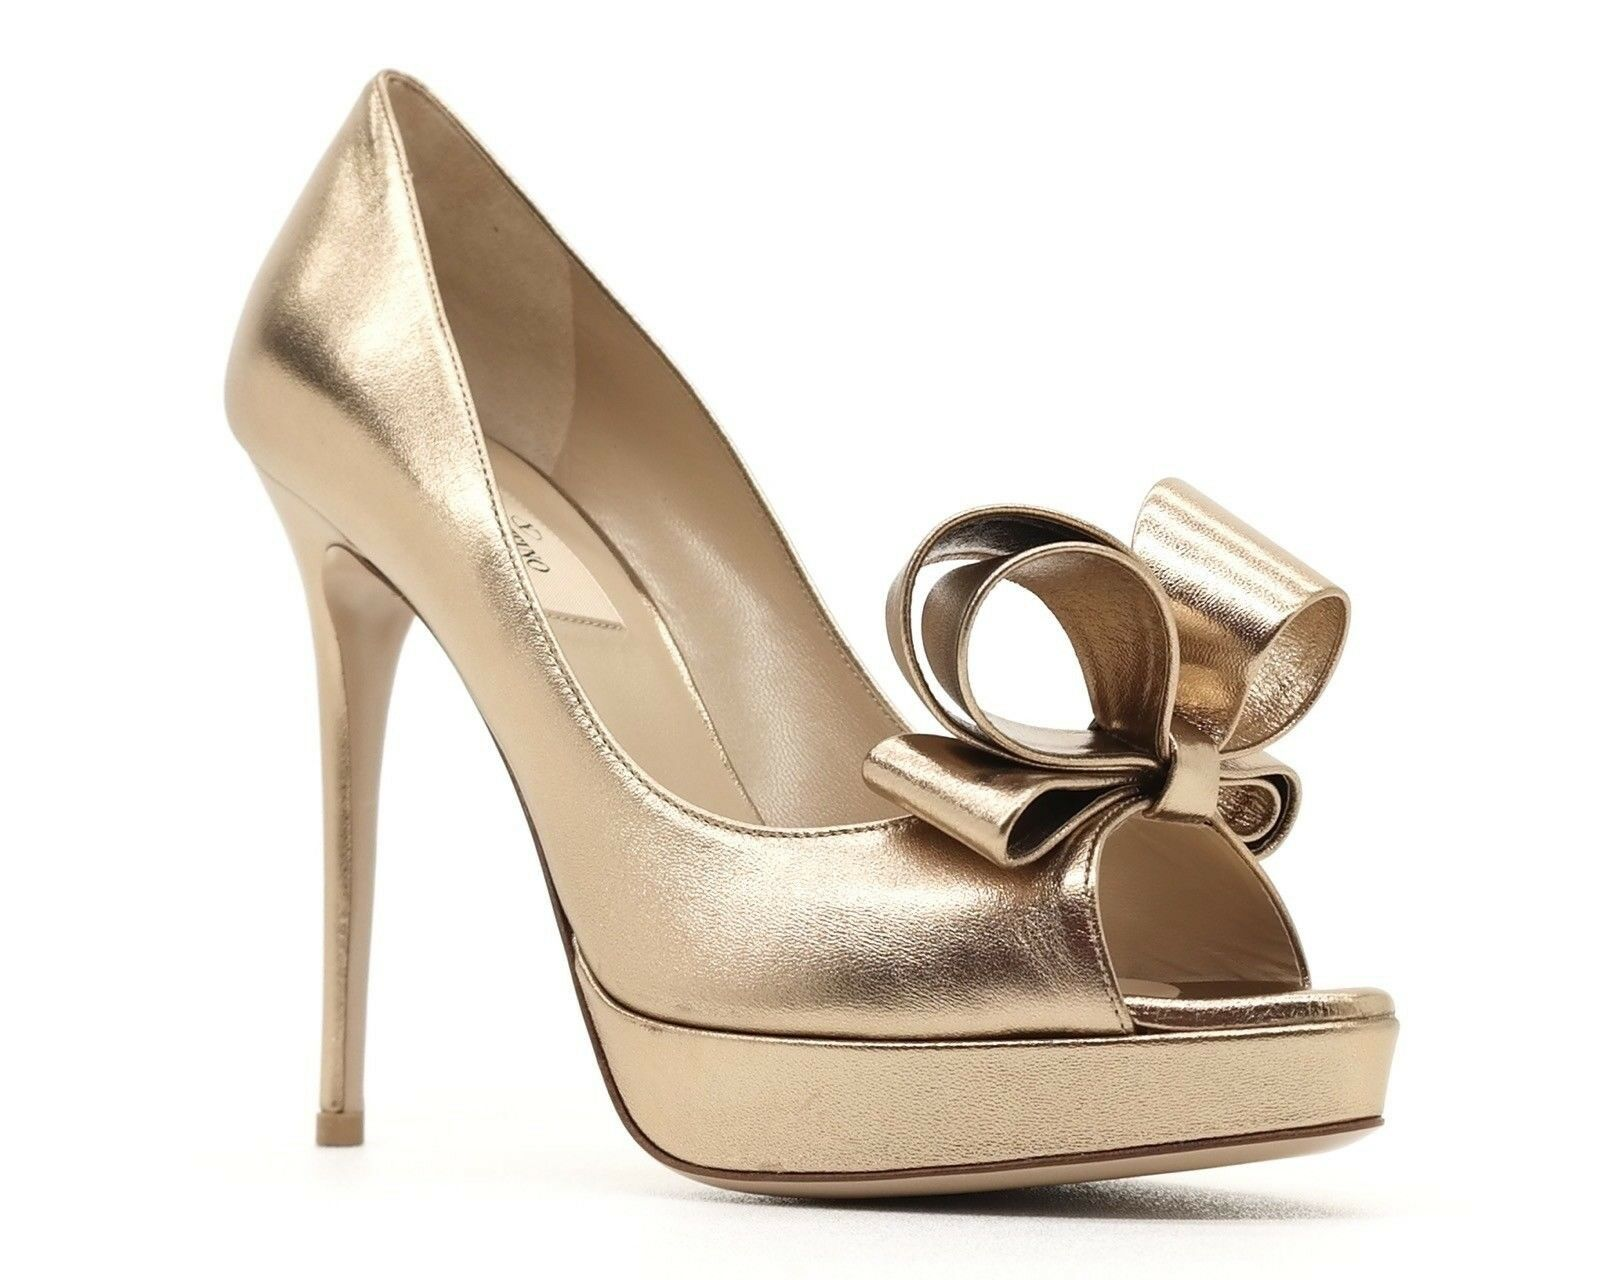 Valentino Garavani Chaussures Couture Noeud Cuir or Taille 9.5 39.5 Neuf